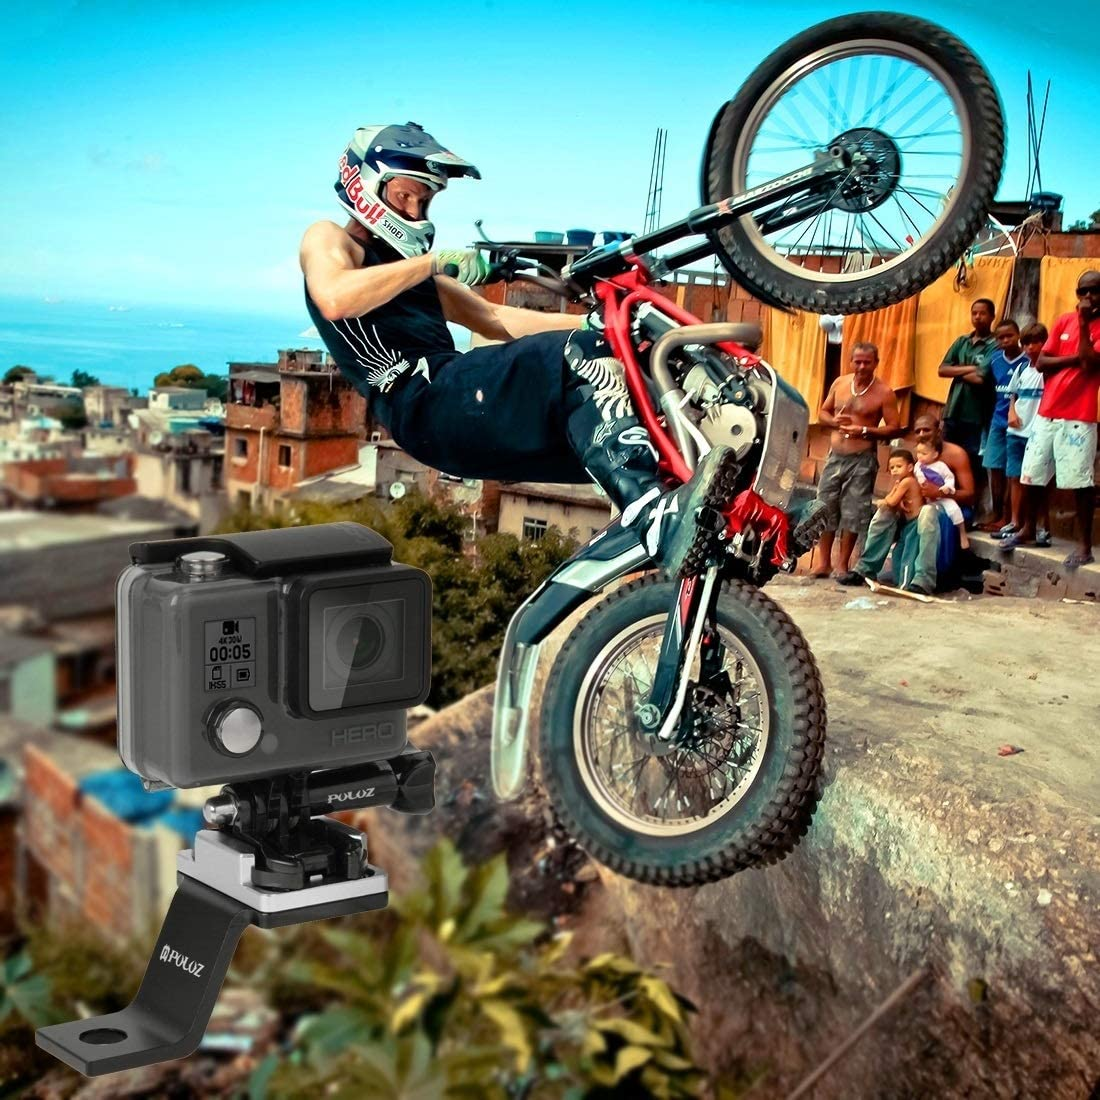 DJI OSMO Action Xiaoyi and Other Action Cameras Durable GuiPing Fixed Metal Motorcycle Holder Mount for GoPro HERO8 Black//Max // HERO7 Color : Black